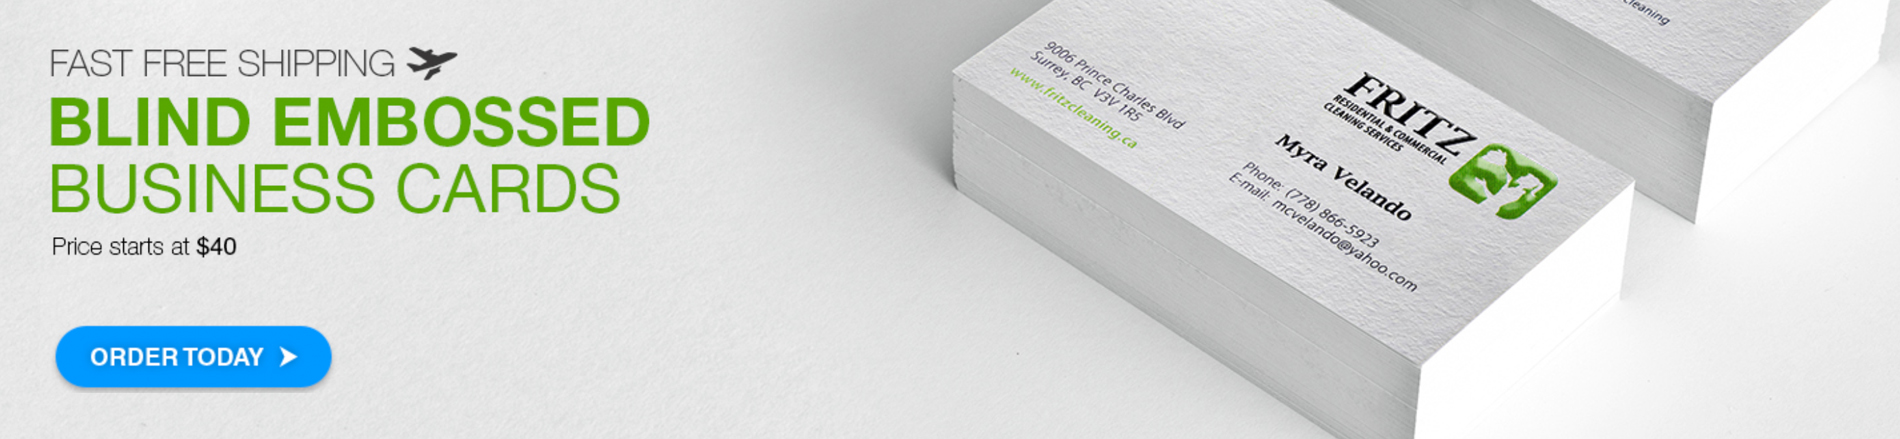 Blind Embossed Business Card by Aladdin Print